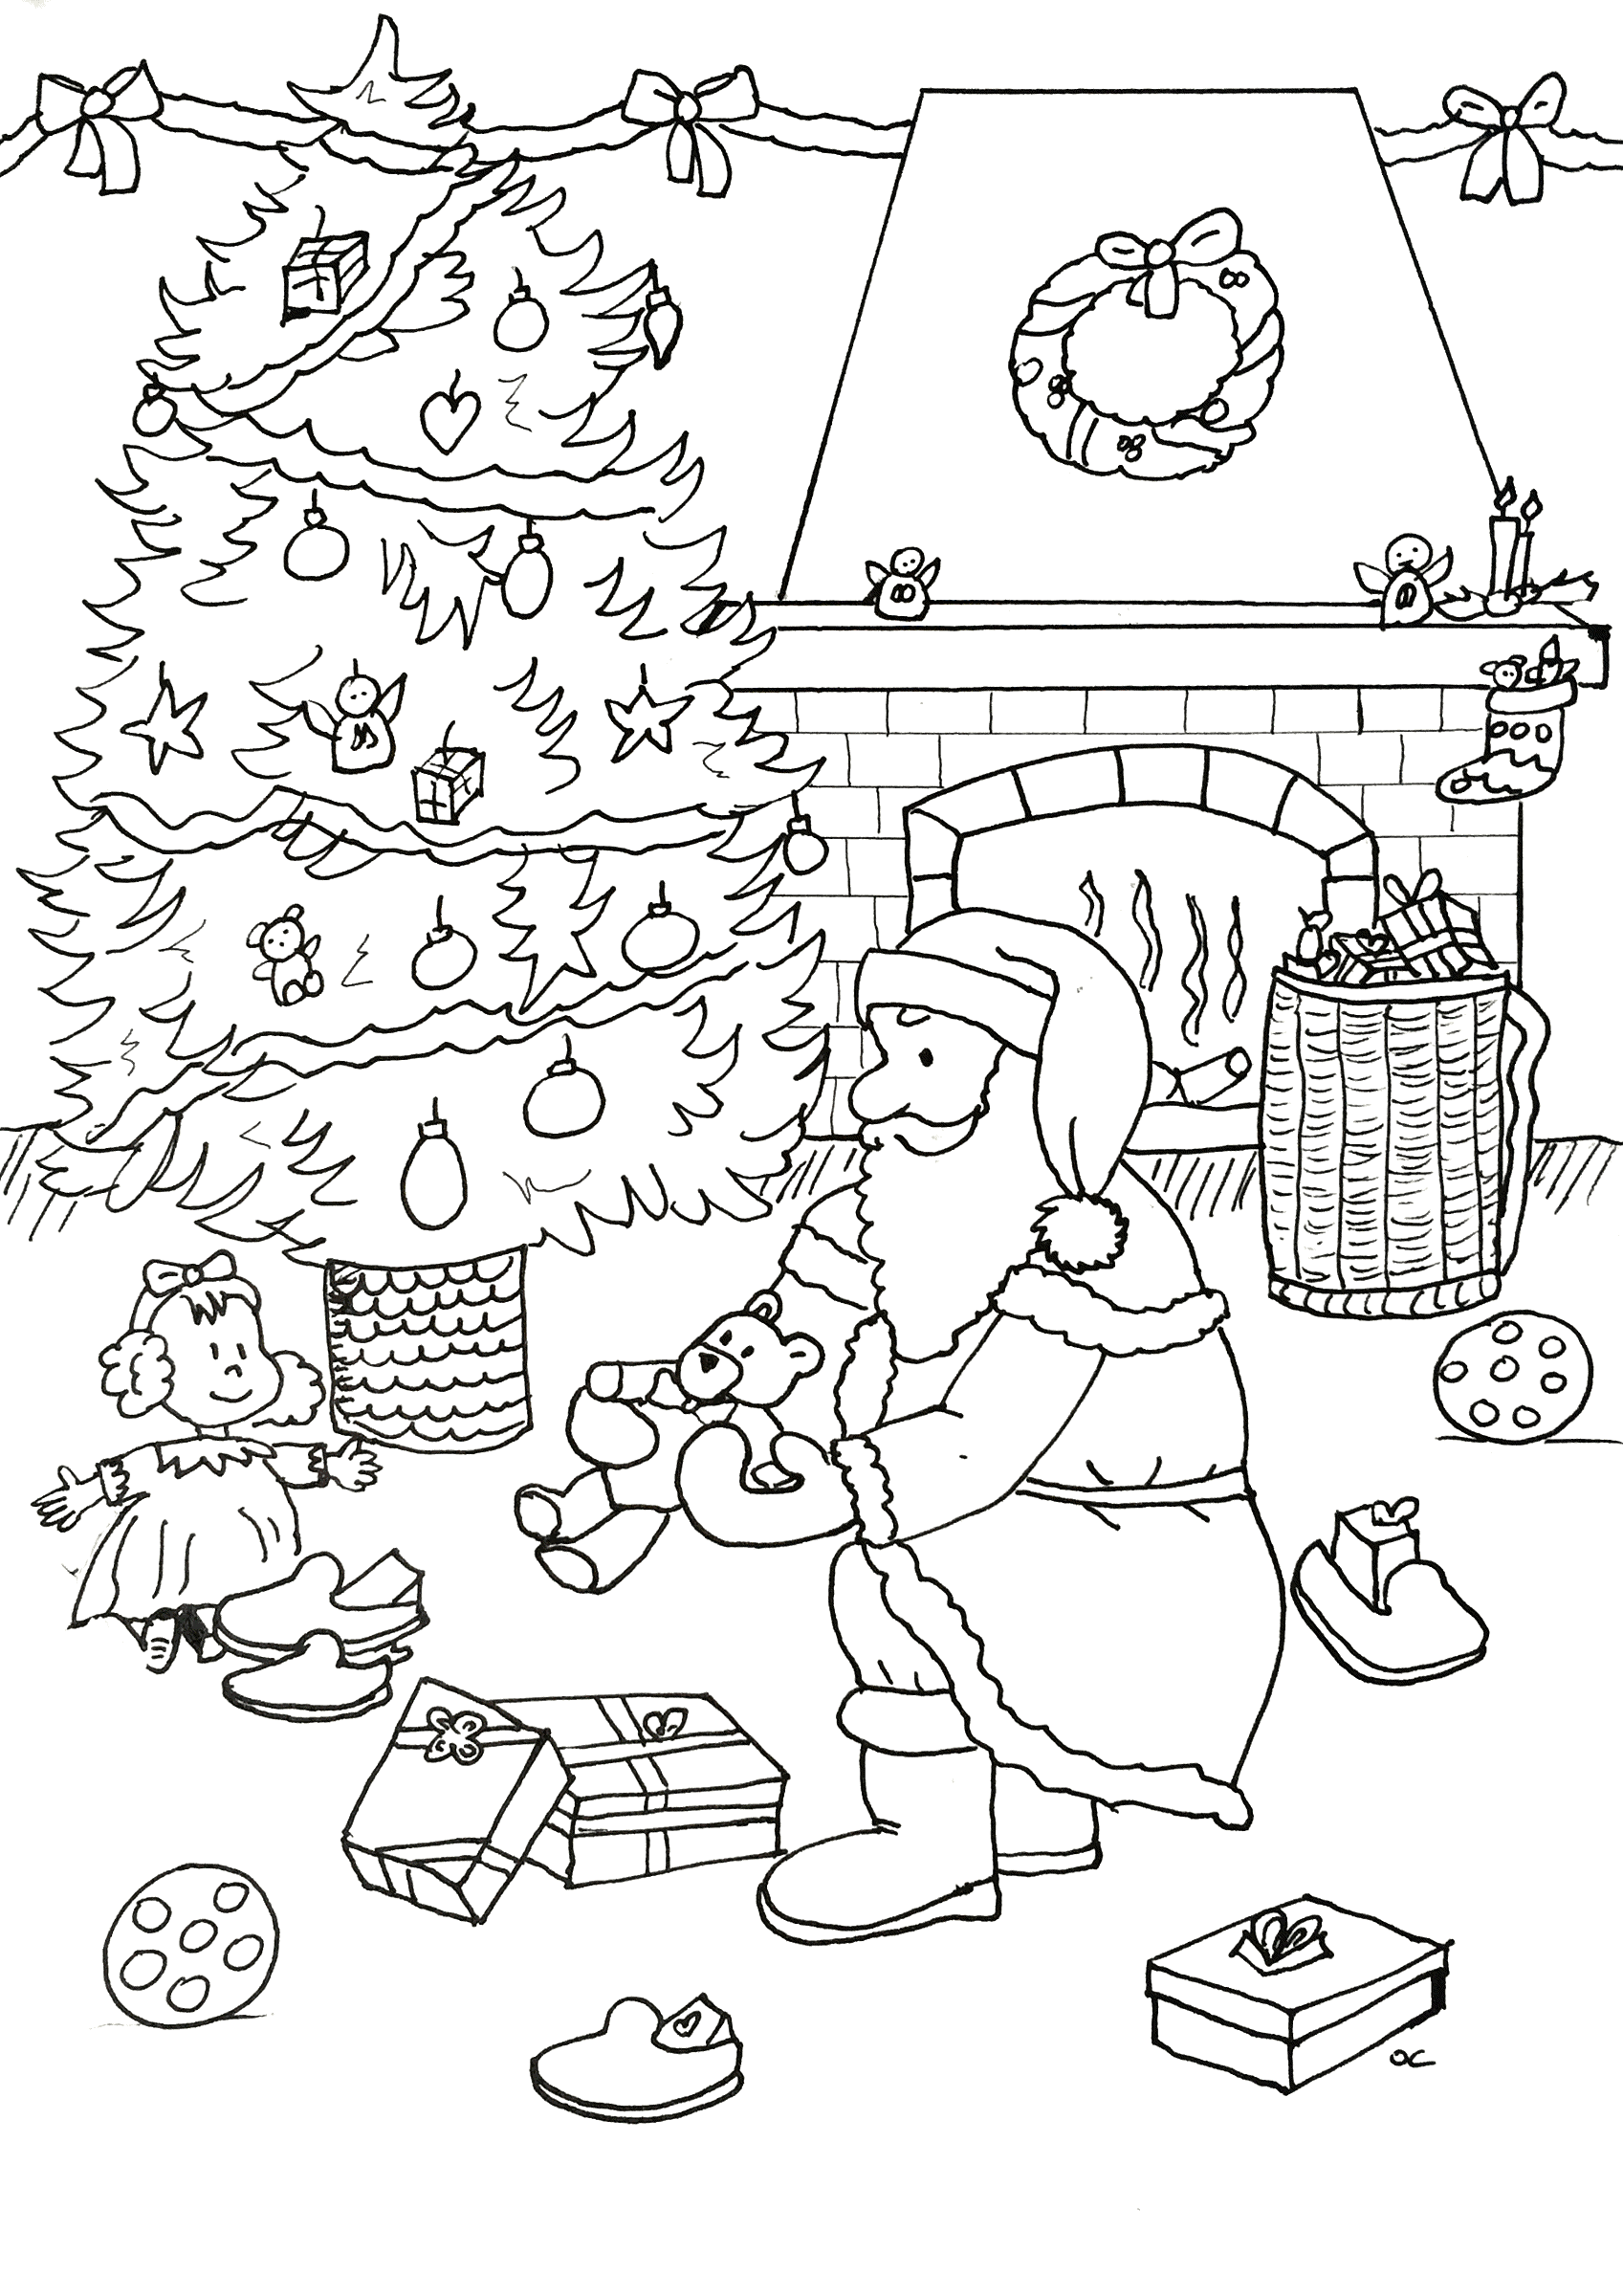 Santa Claus coloring page to print and color for free